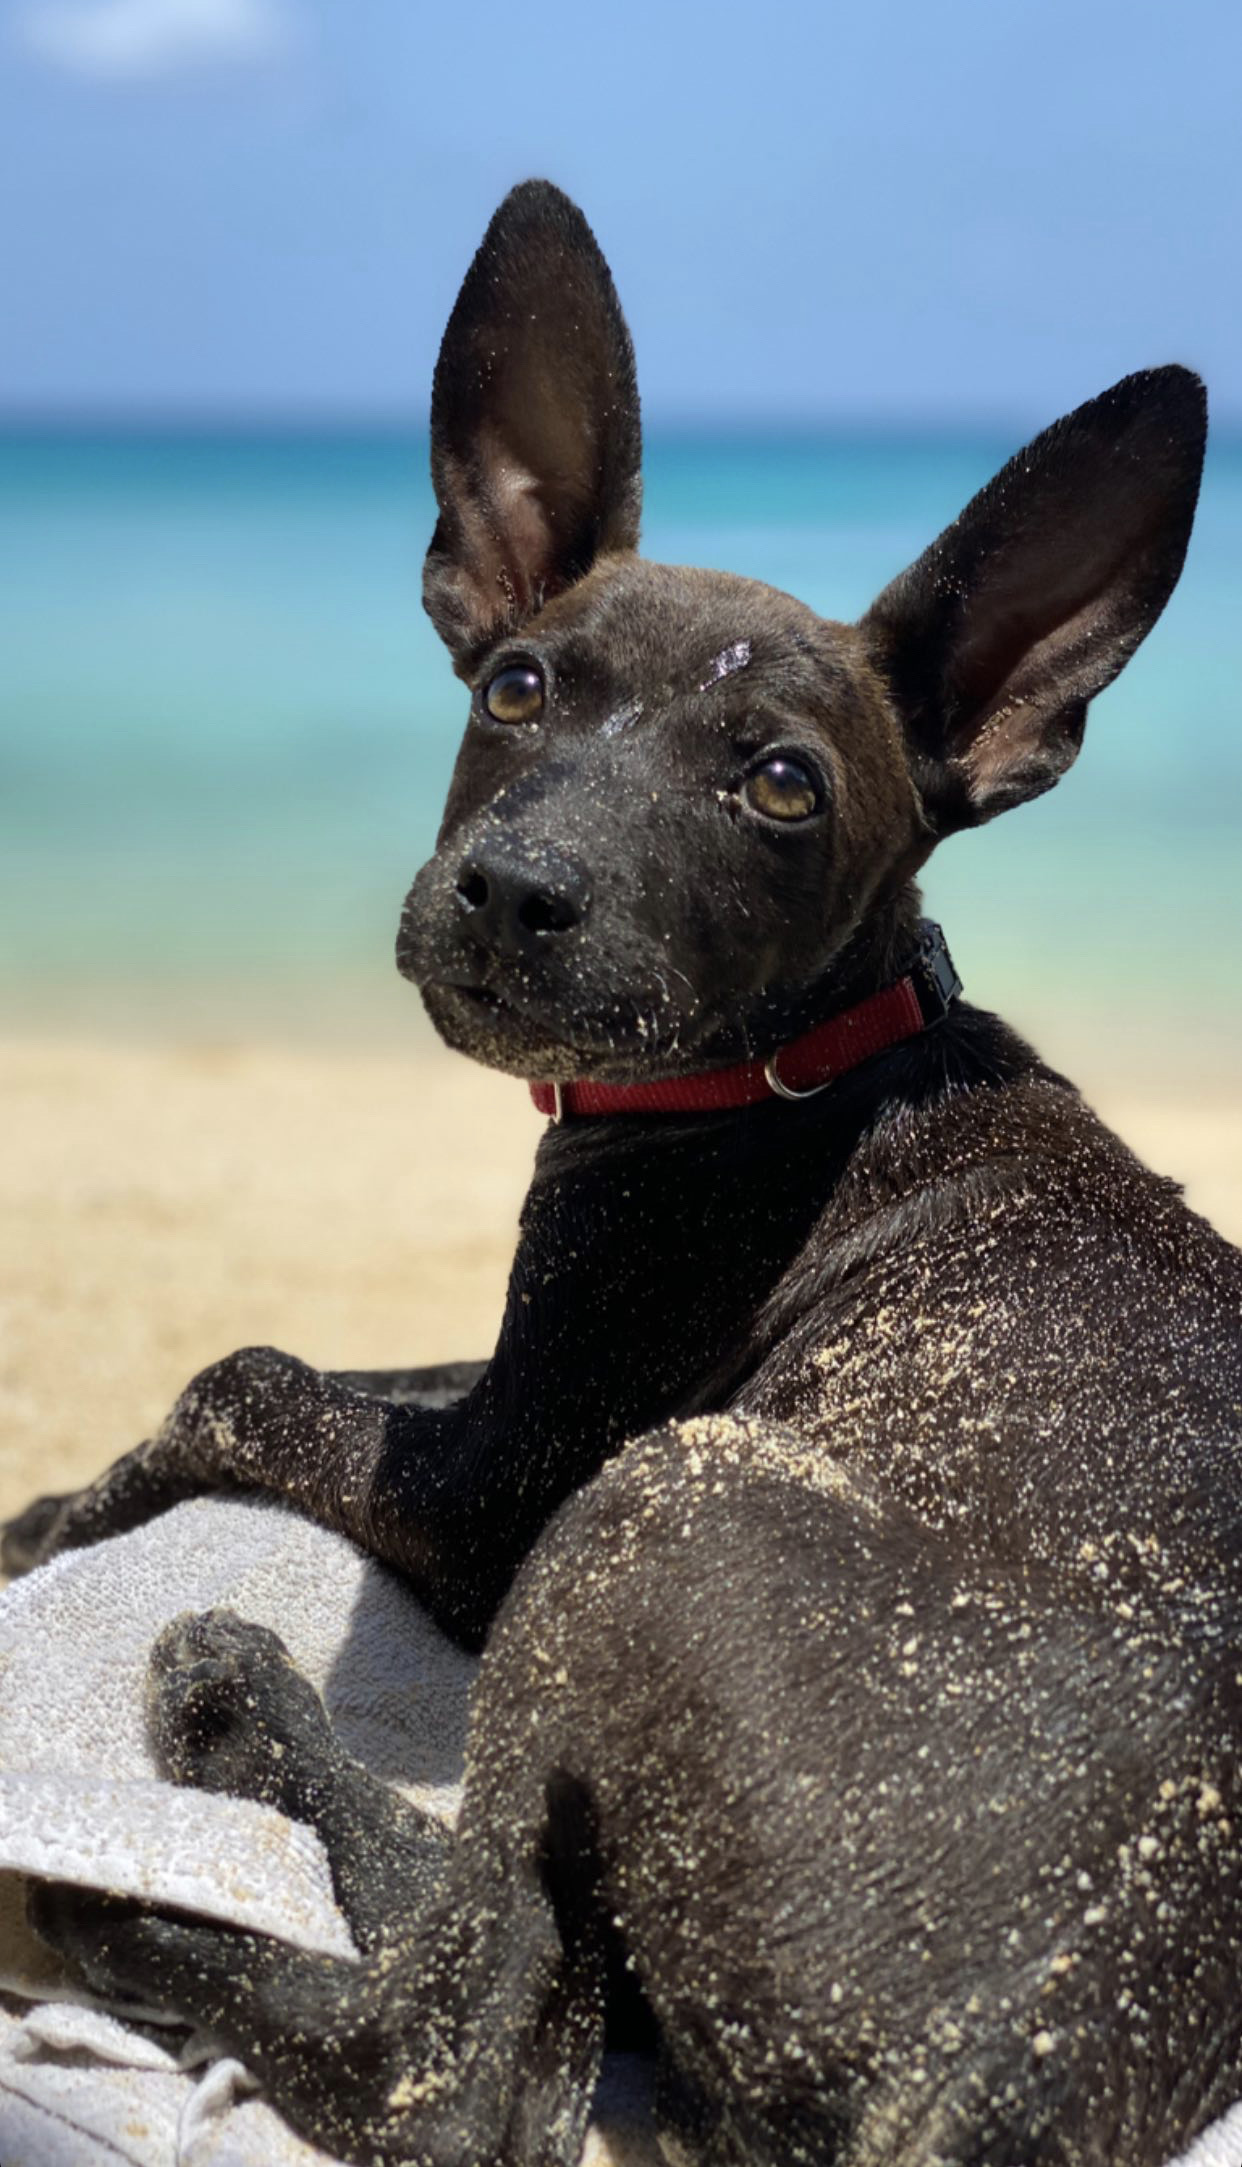 A black dog with pointy ears on the beach in Anguilla